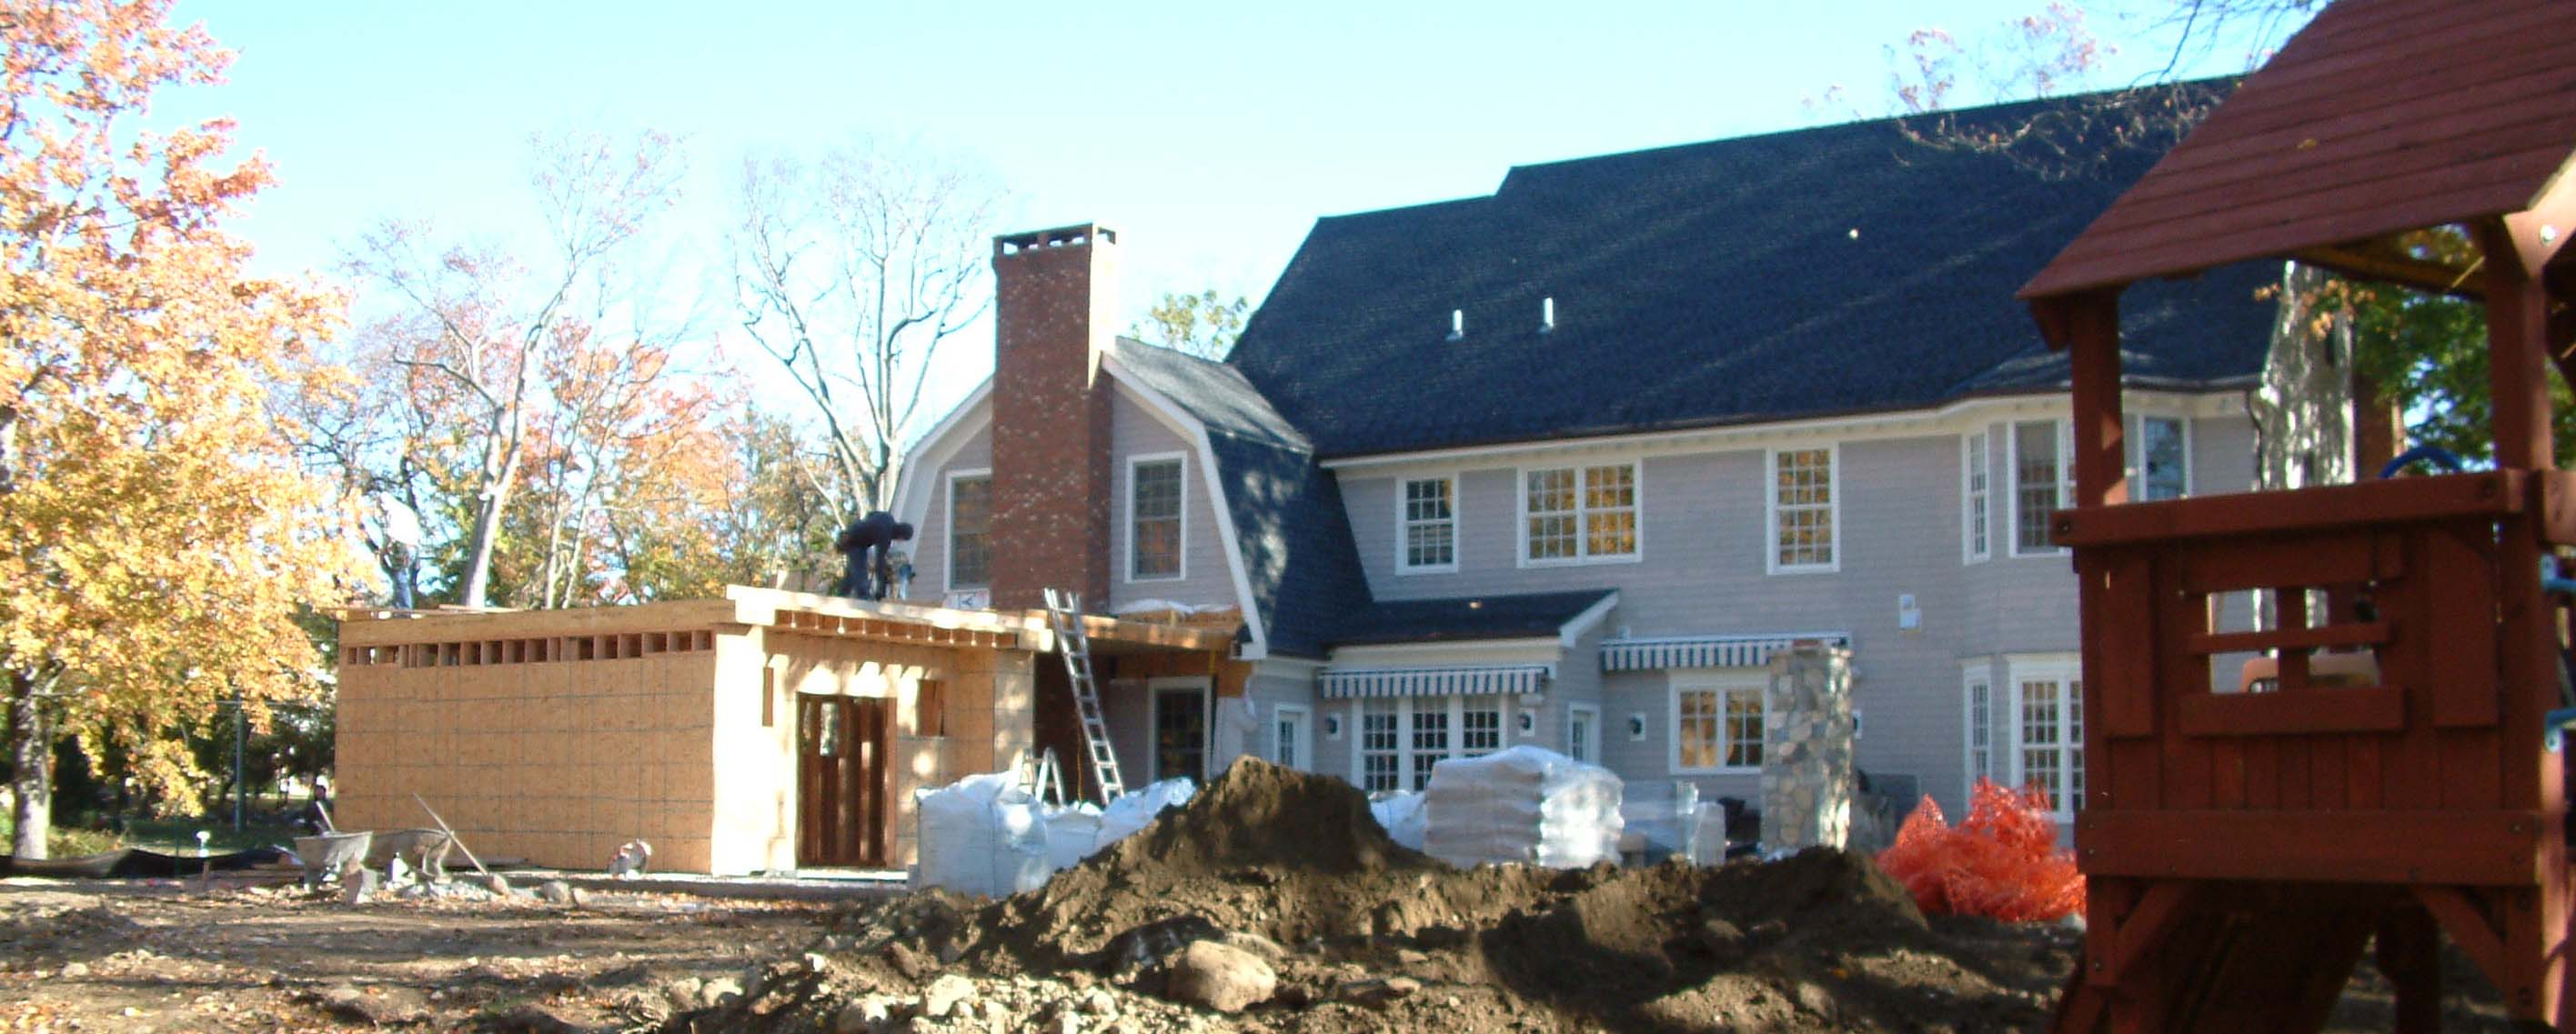 Home Addition Builders near me NJ home addition contractors ocean and monmouth county NJ